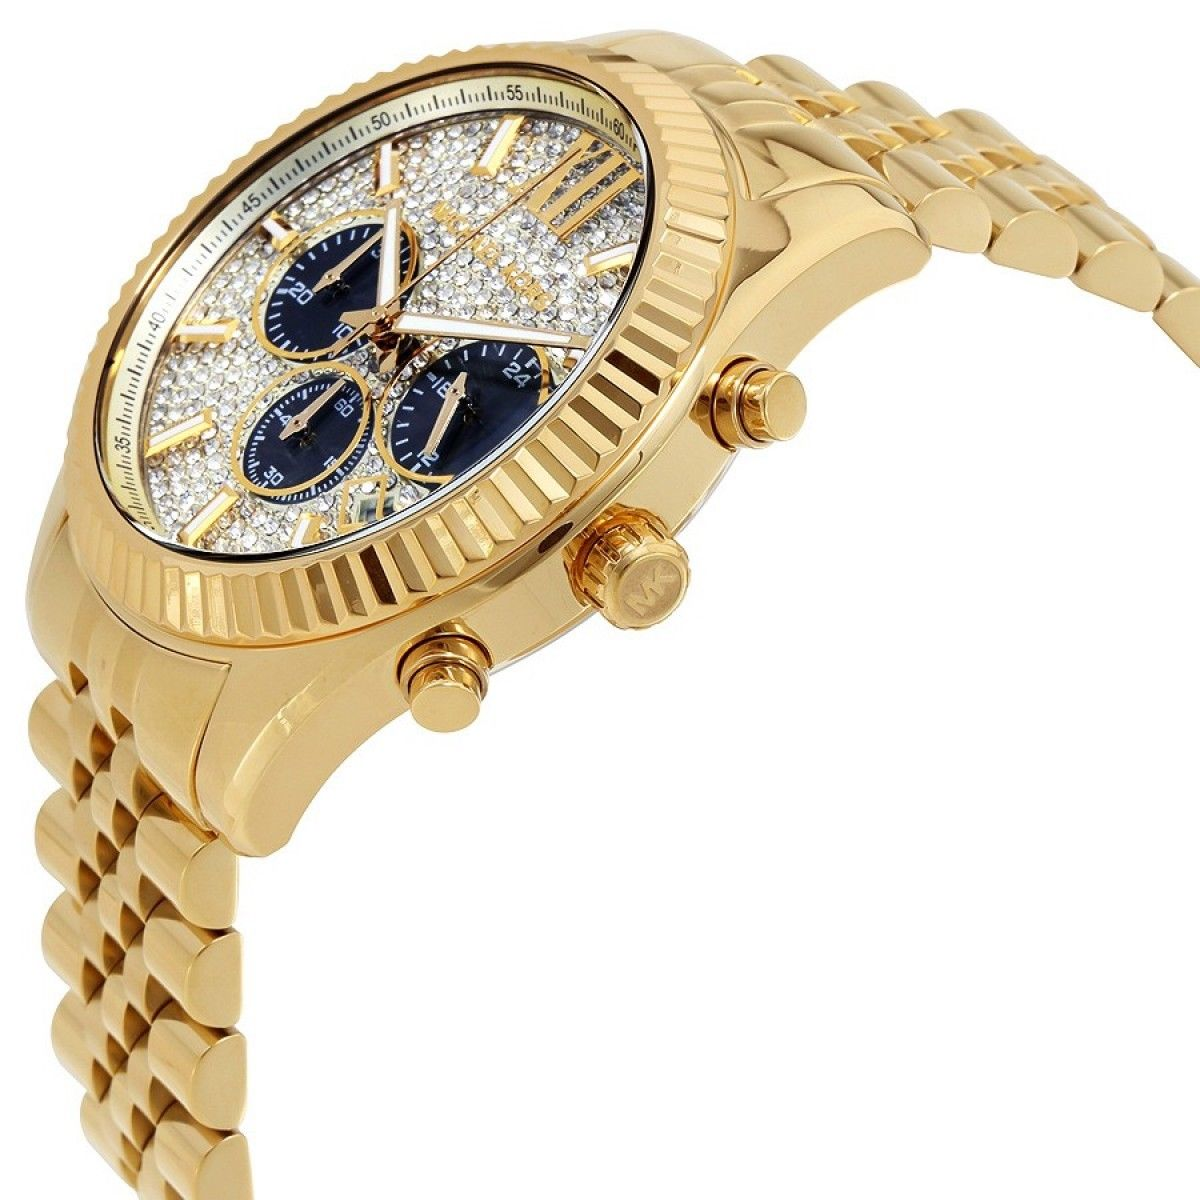 549918d895e4 Michael Kors - Men s Gold-Tone Lexington Chronograph Watch MK8494 -  Walmart.com